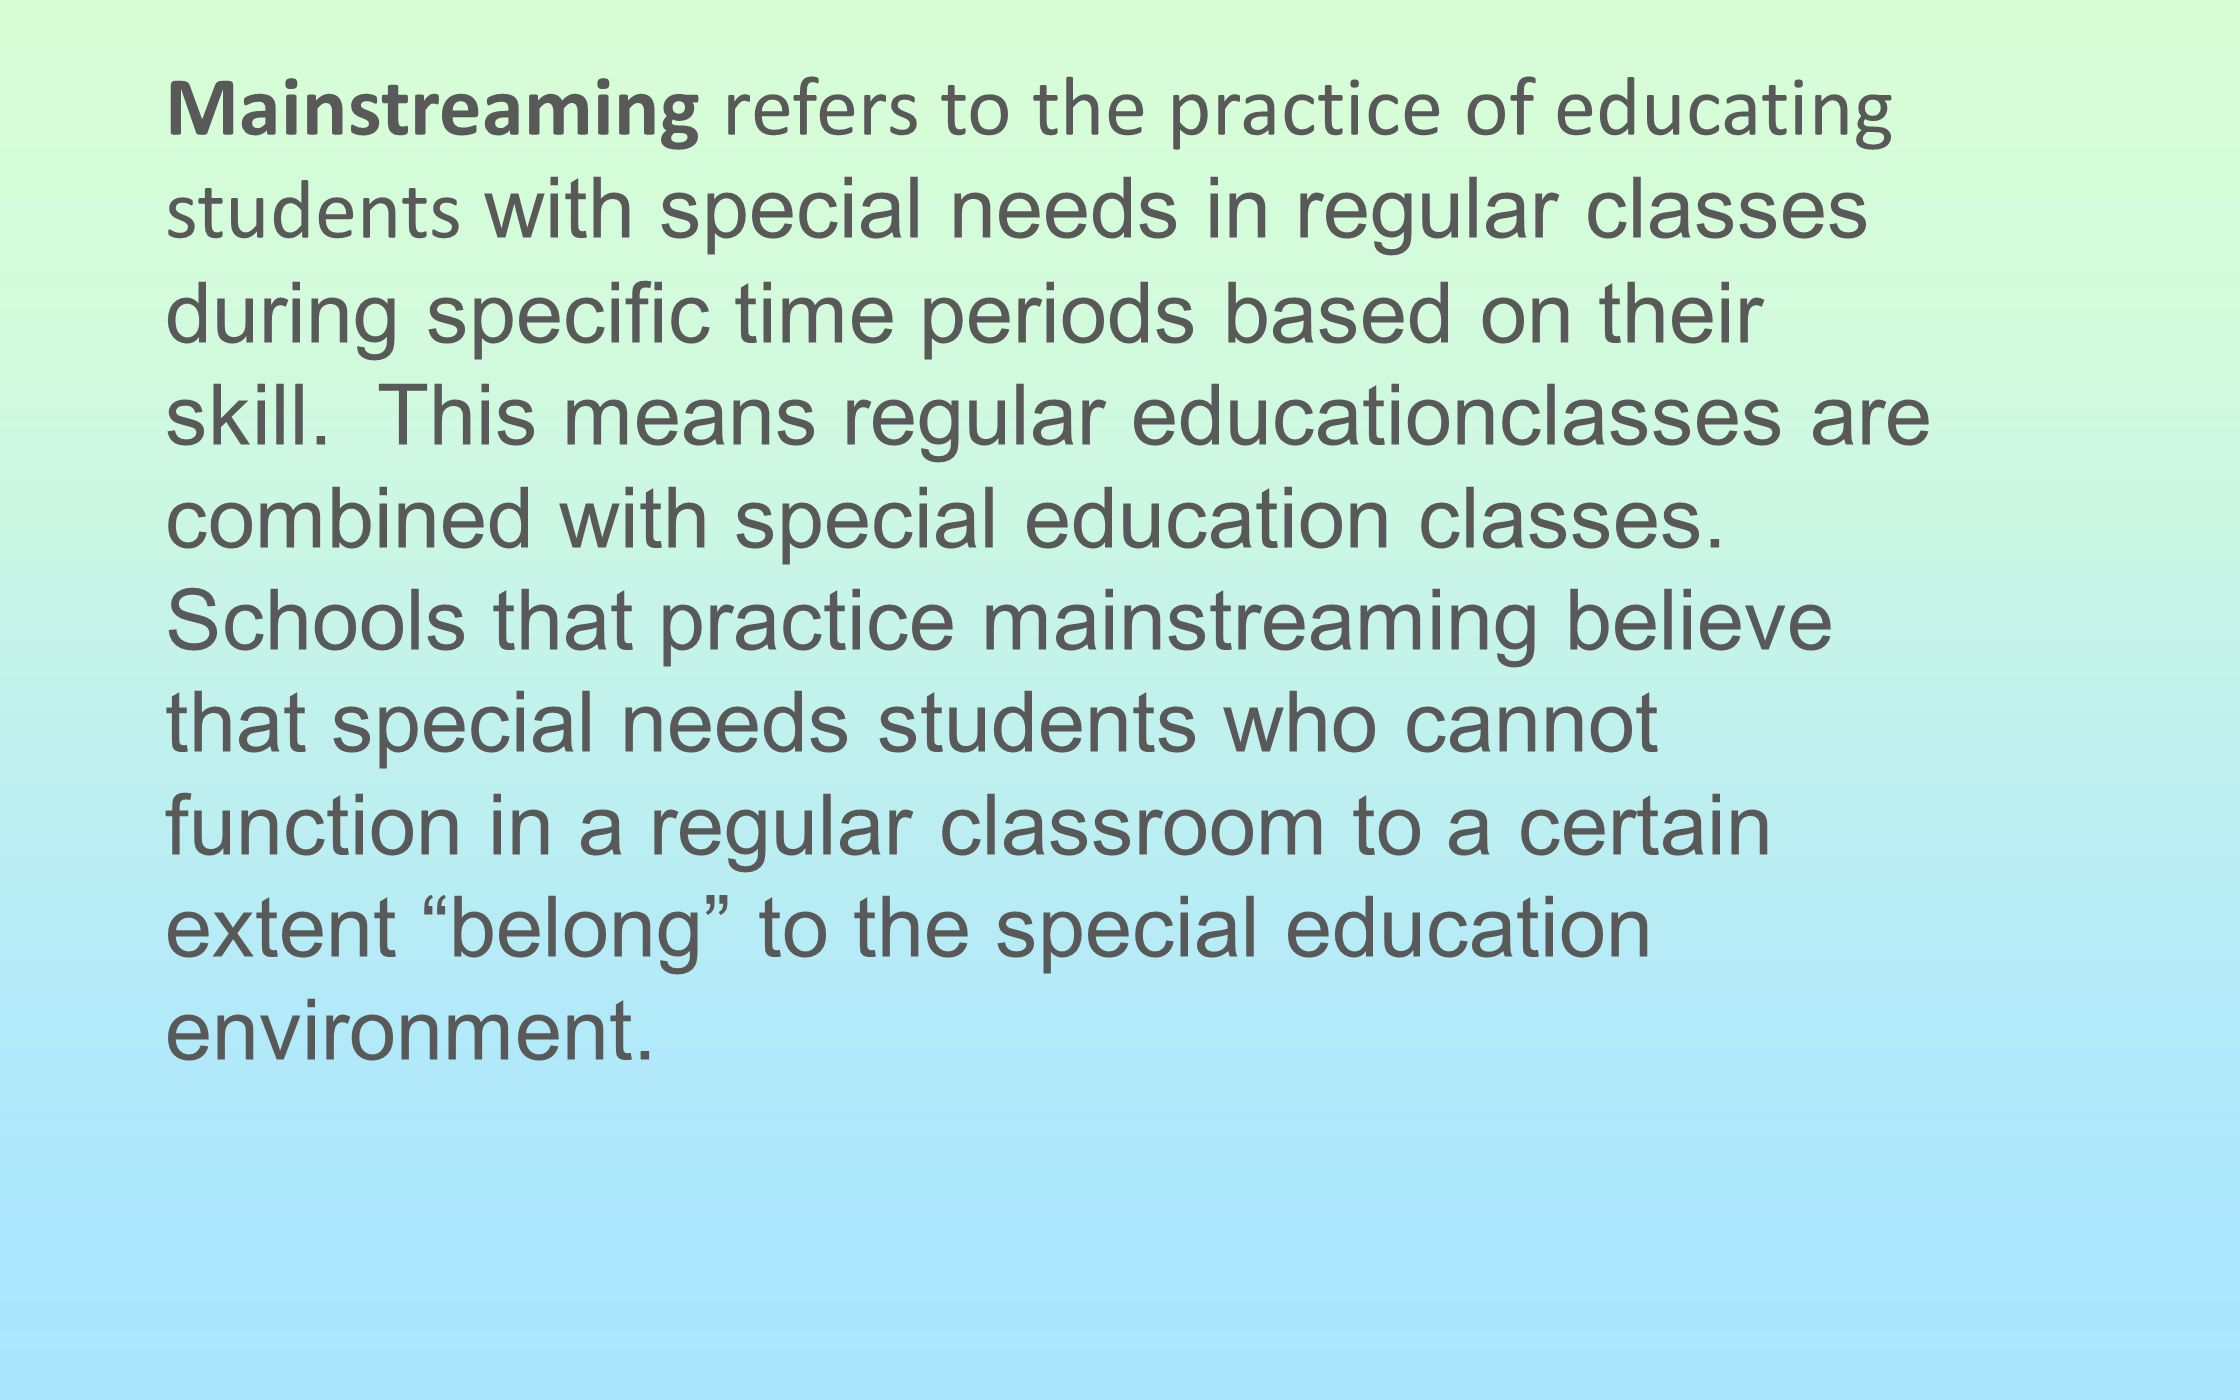 Mainstreaming refers to the practice of educating students with special needs in regular classes during specific time periods based on their skill.